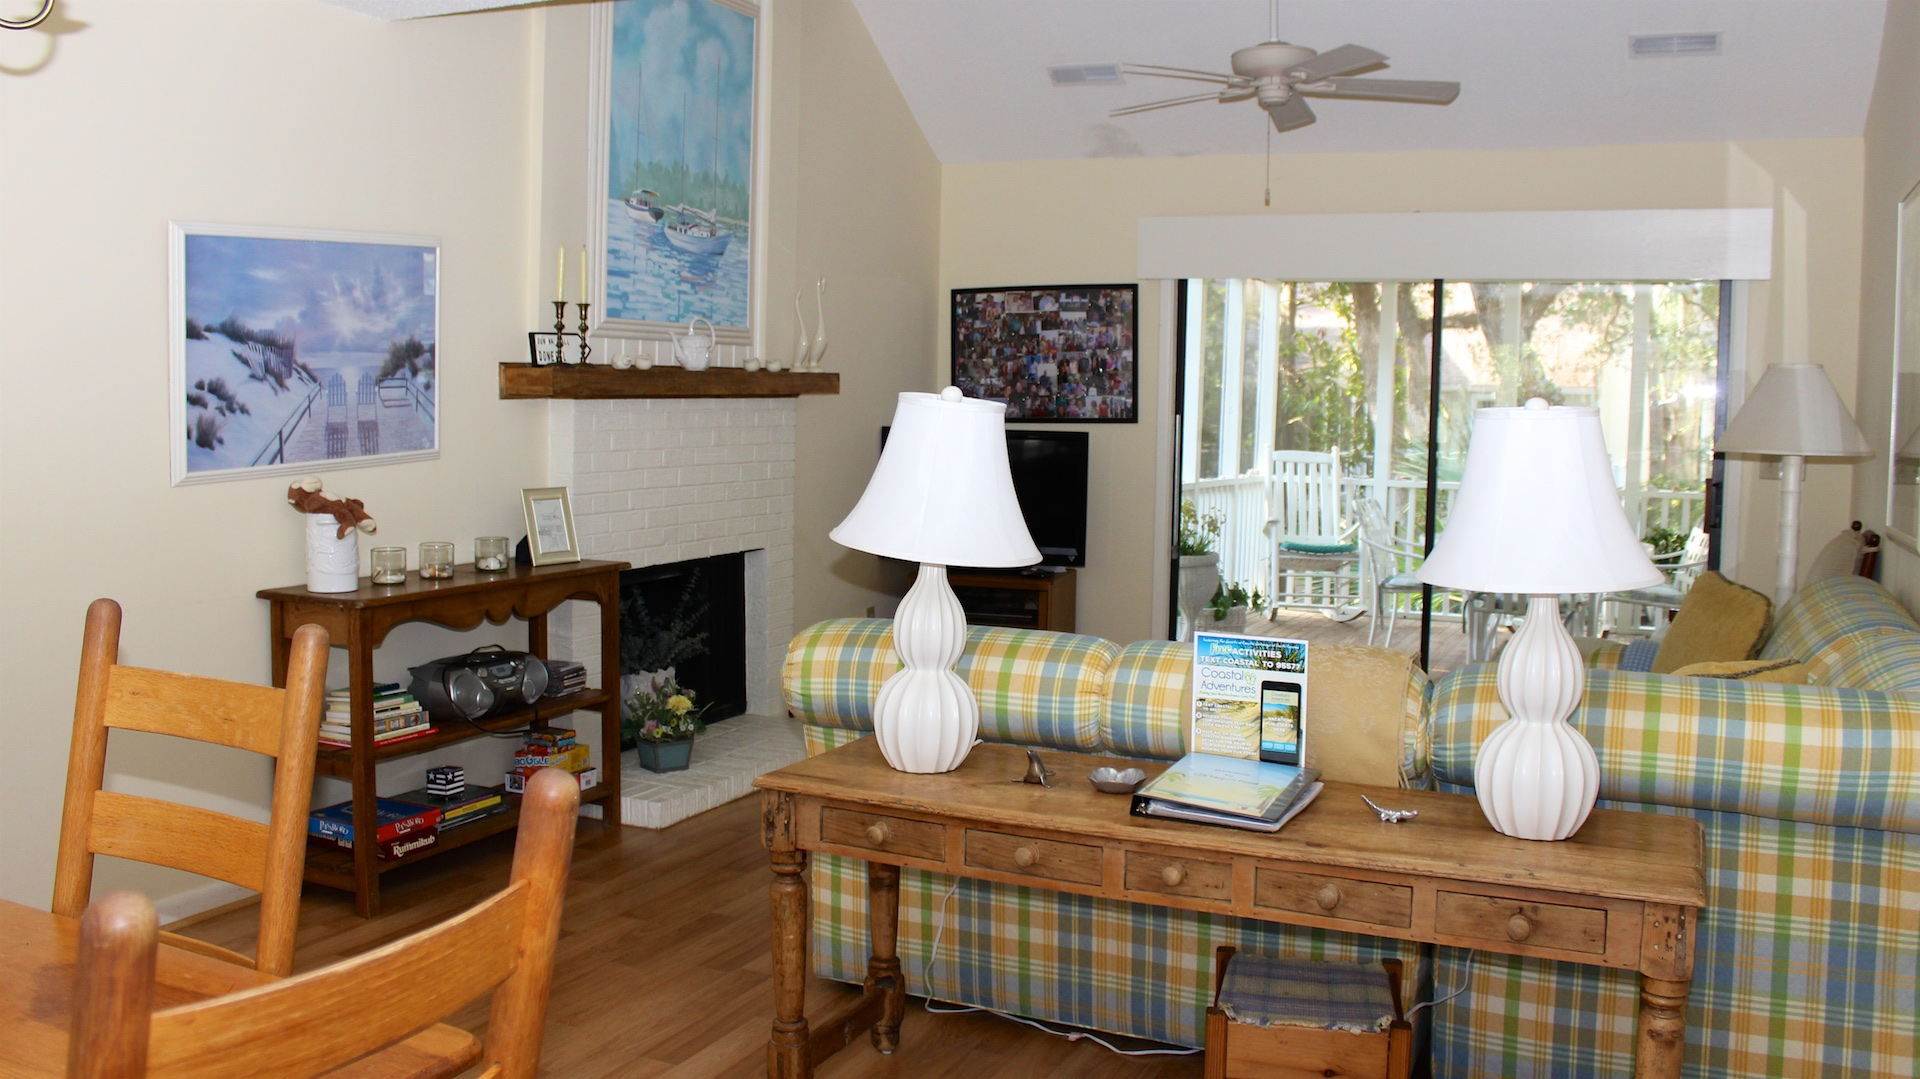 The cottage features an open dining/living area, hardwood floors, and cathedral ceilings.